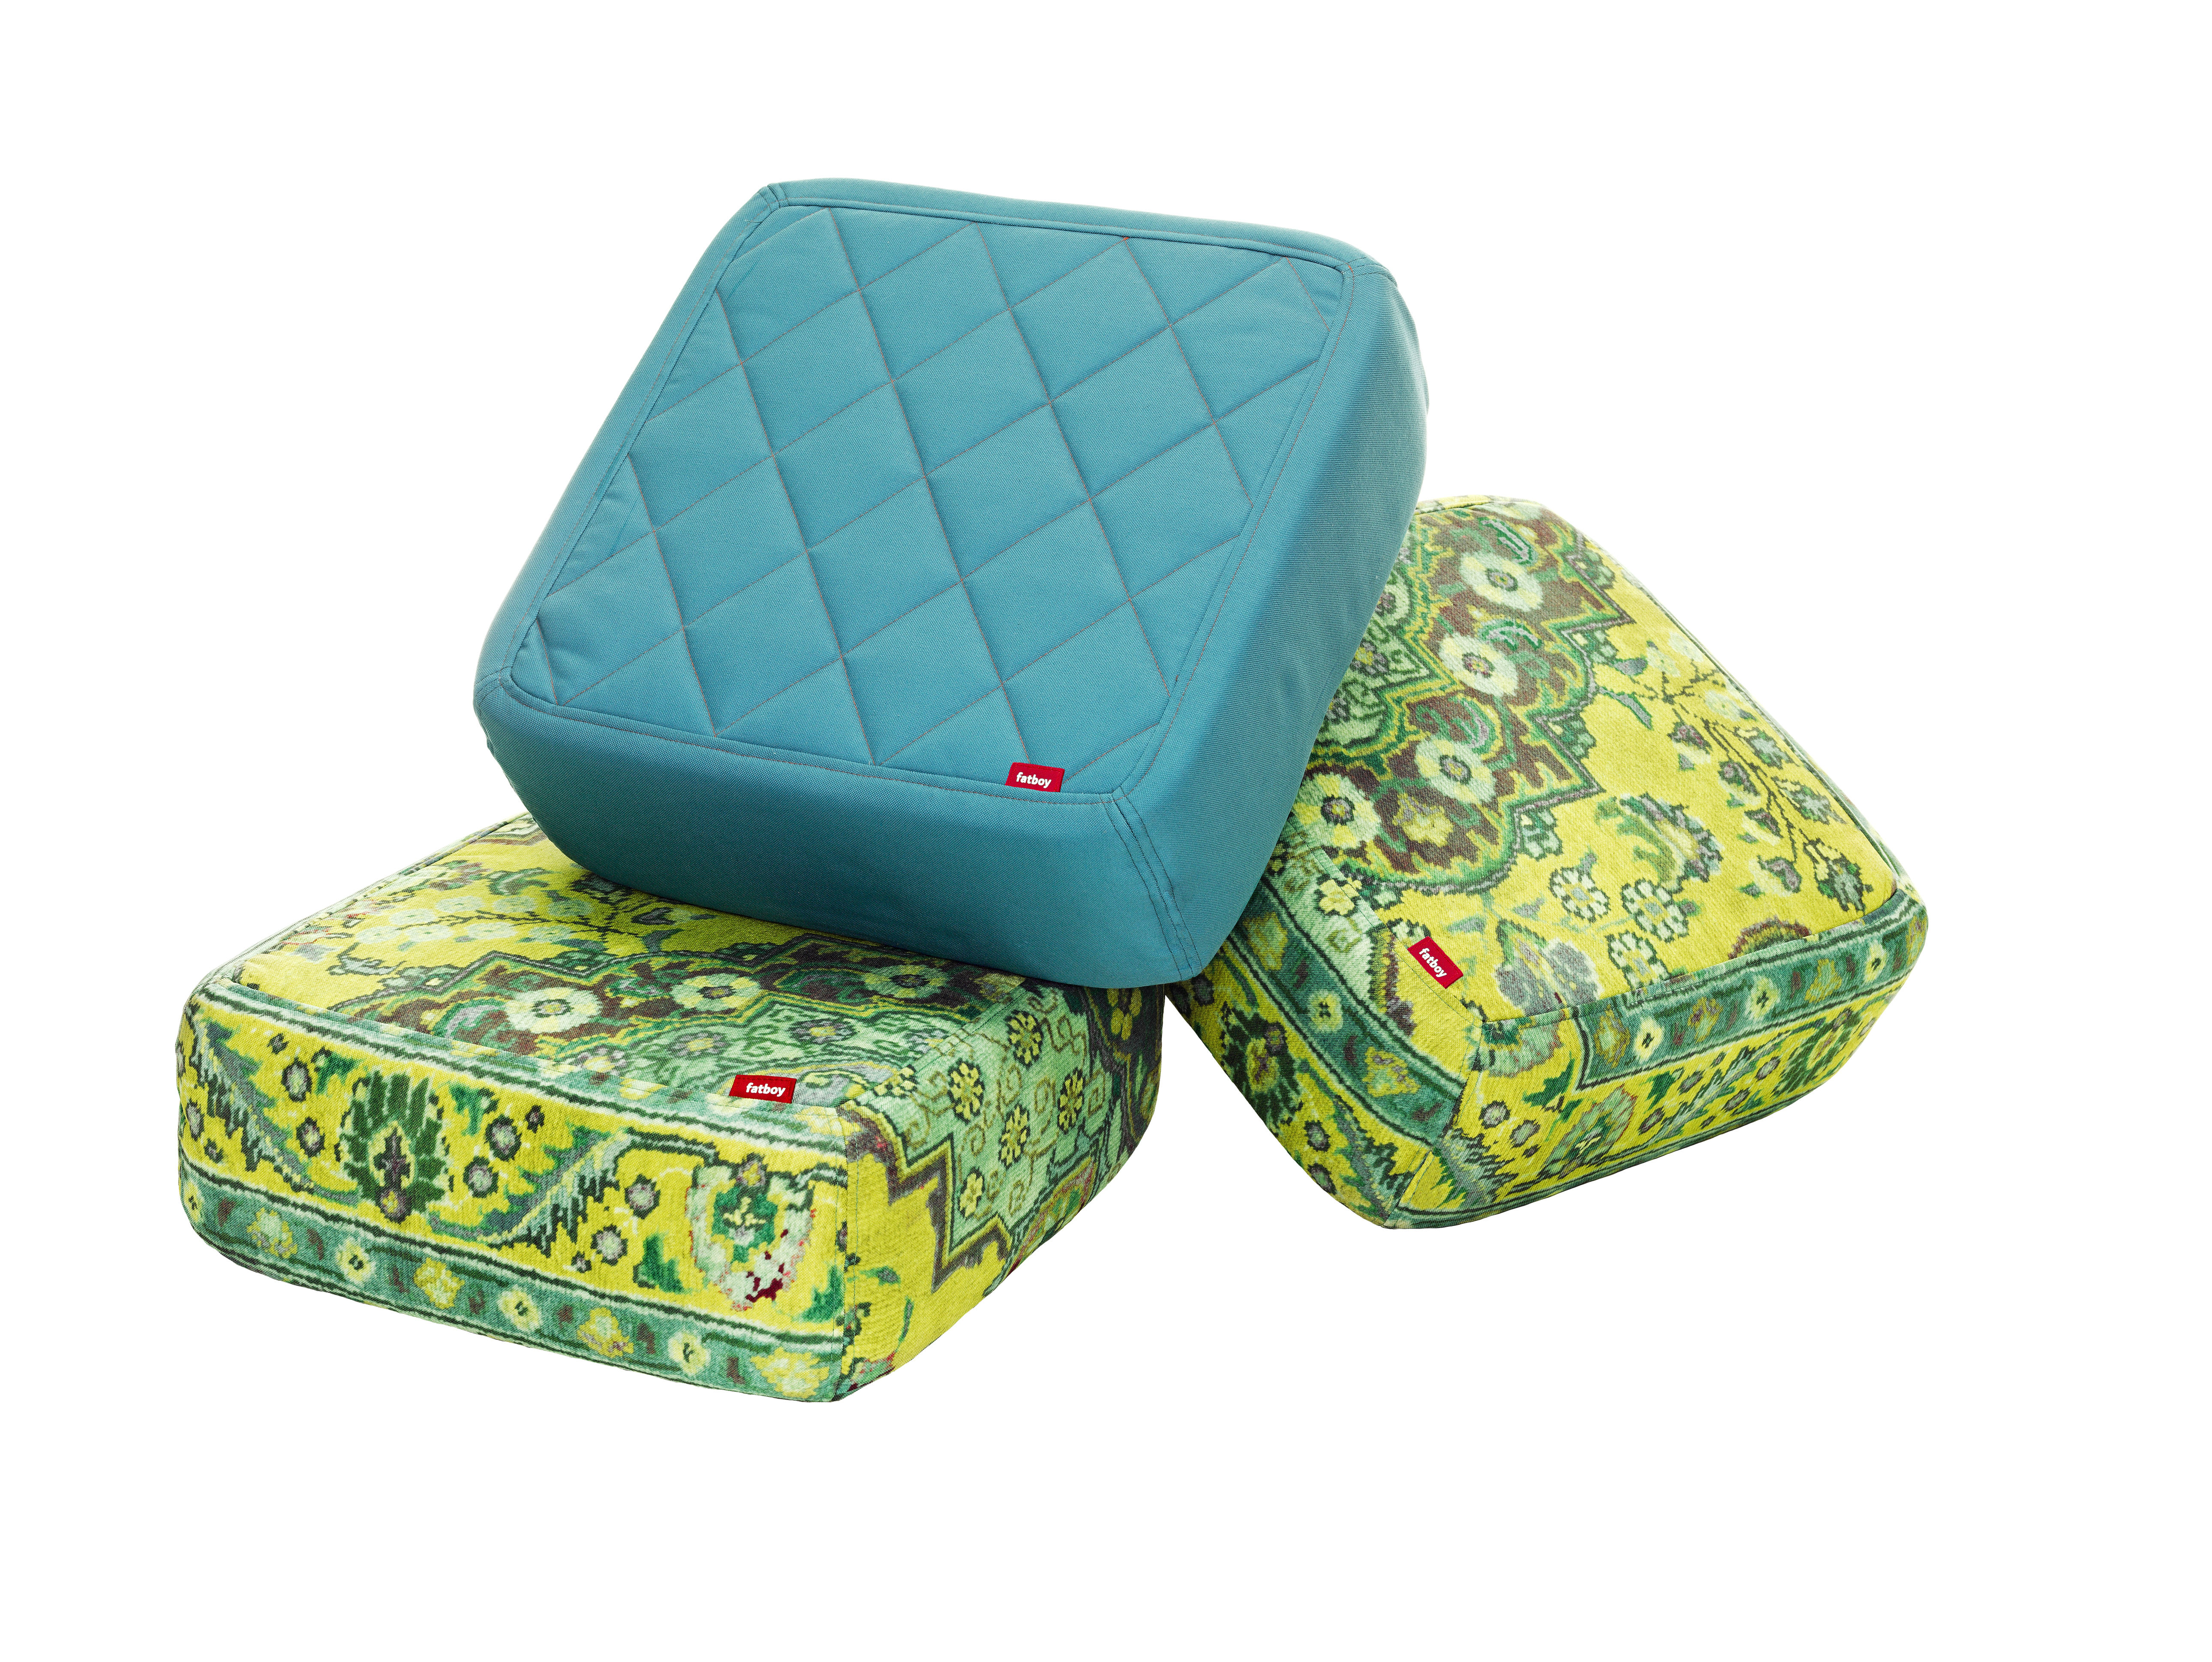 baboesjka pouf set 3 floor cushions blue yellow persian by fatboy. Black Bedroom Furniture Sets. Home Design Ideas